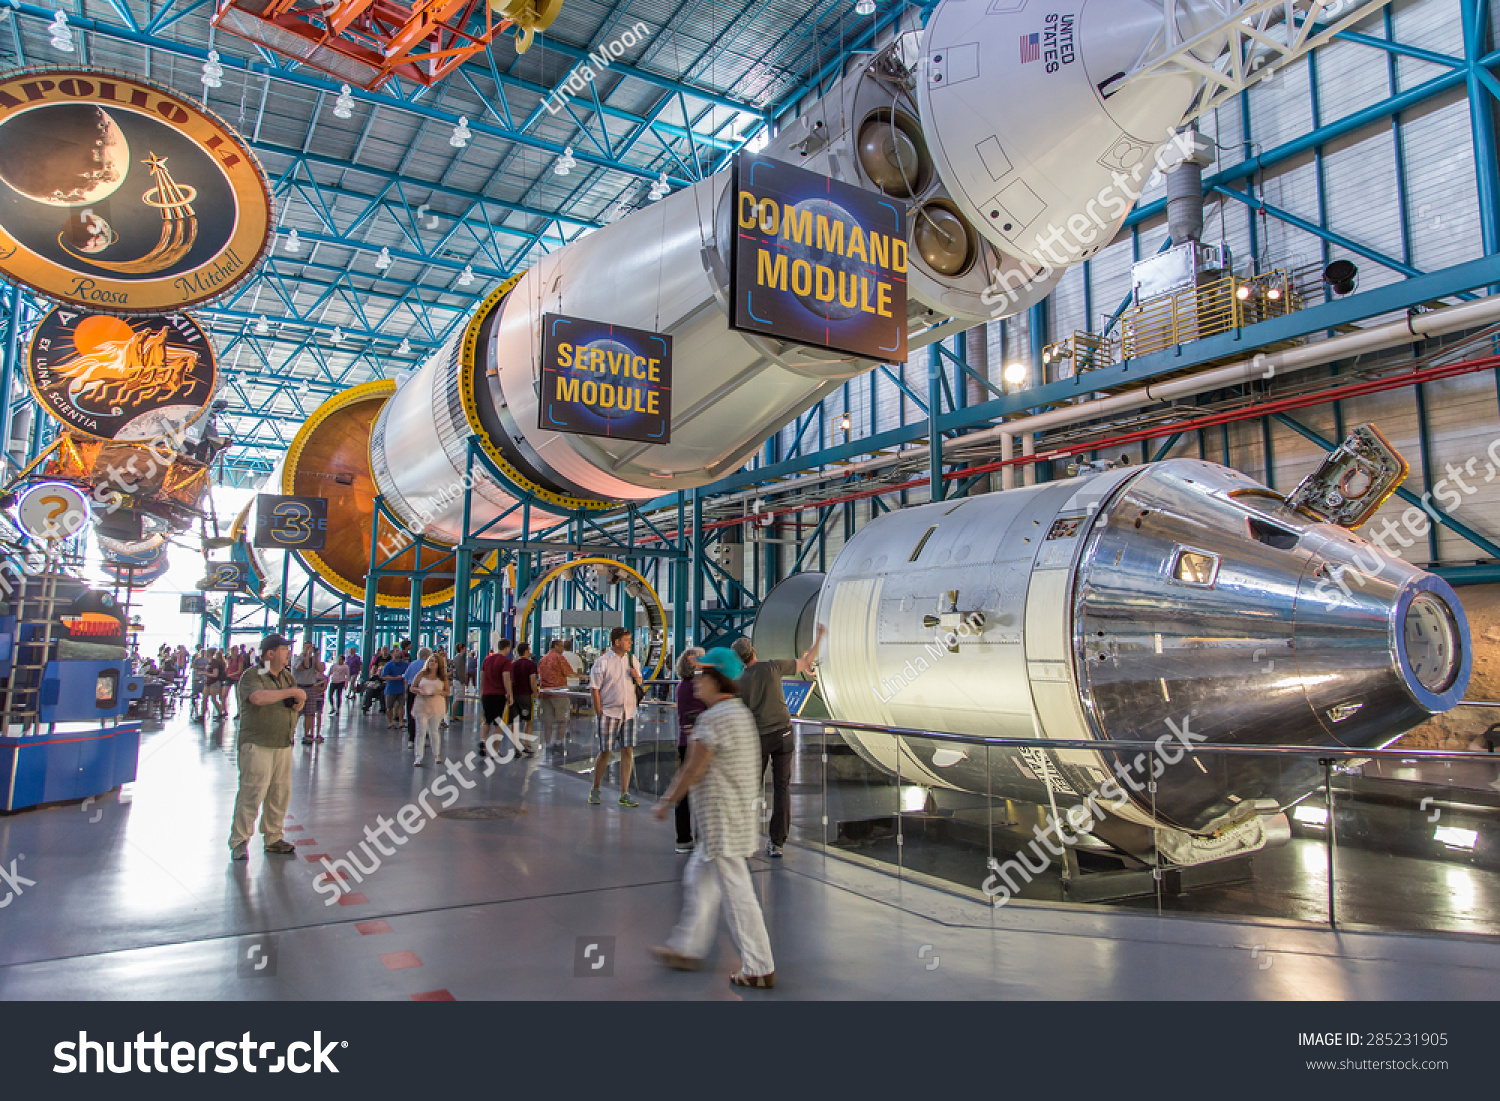 stock-photo-cape-canaveral-florida-usa-march-nasa-kennedy-space-center-museum-a-quick-walk-around-285231905